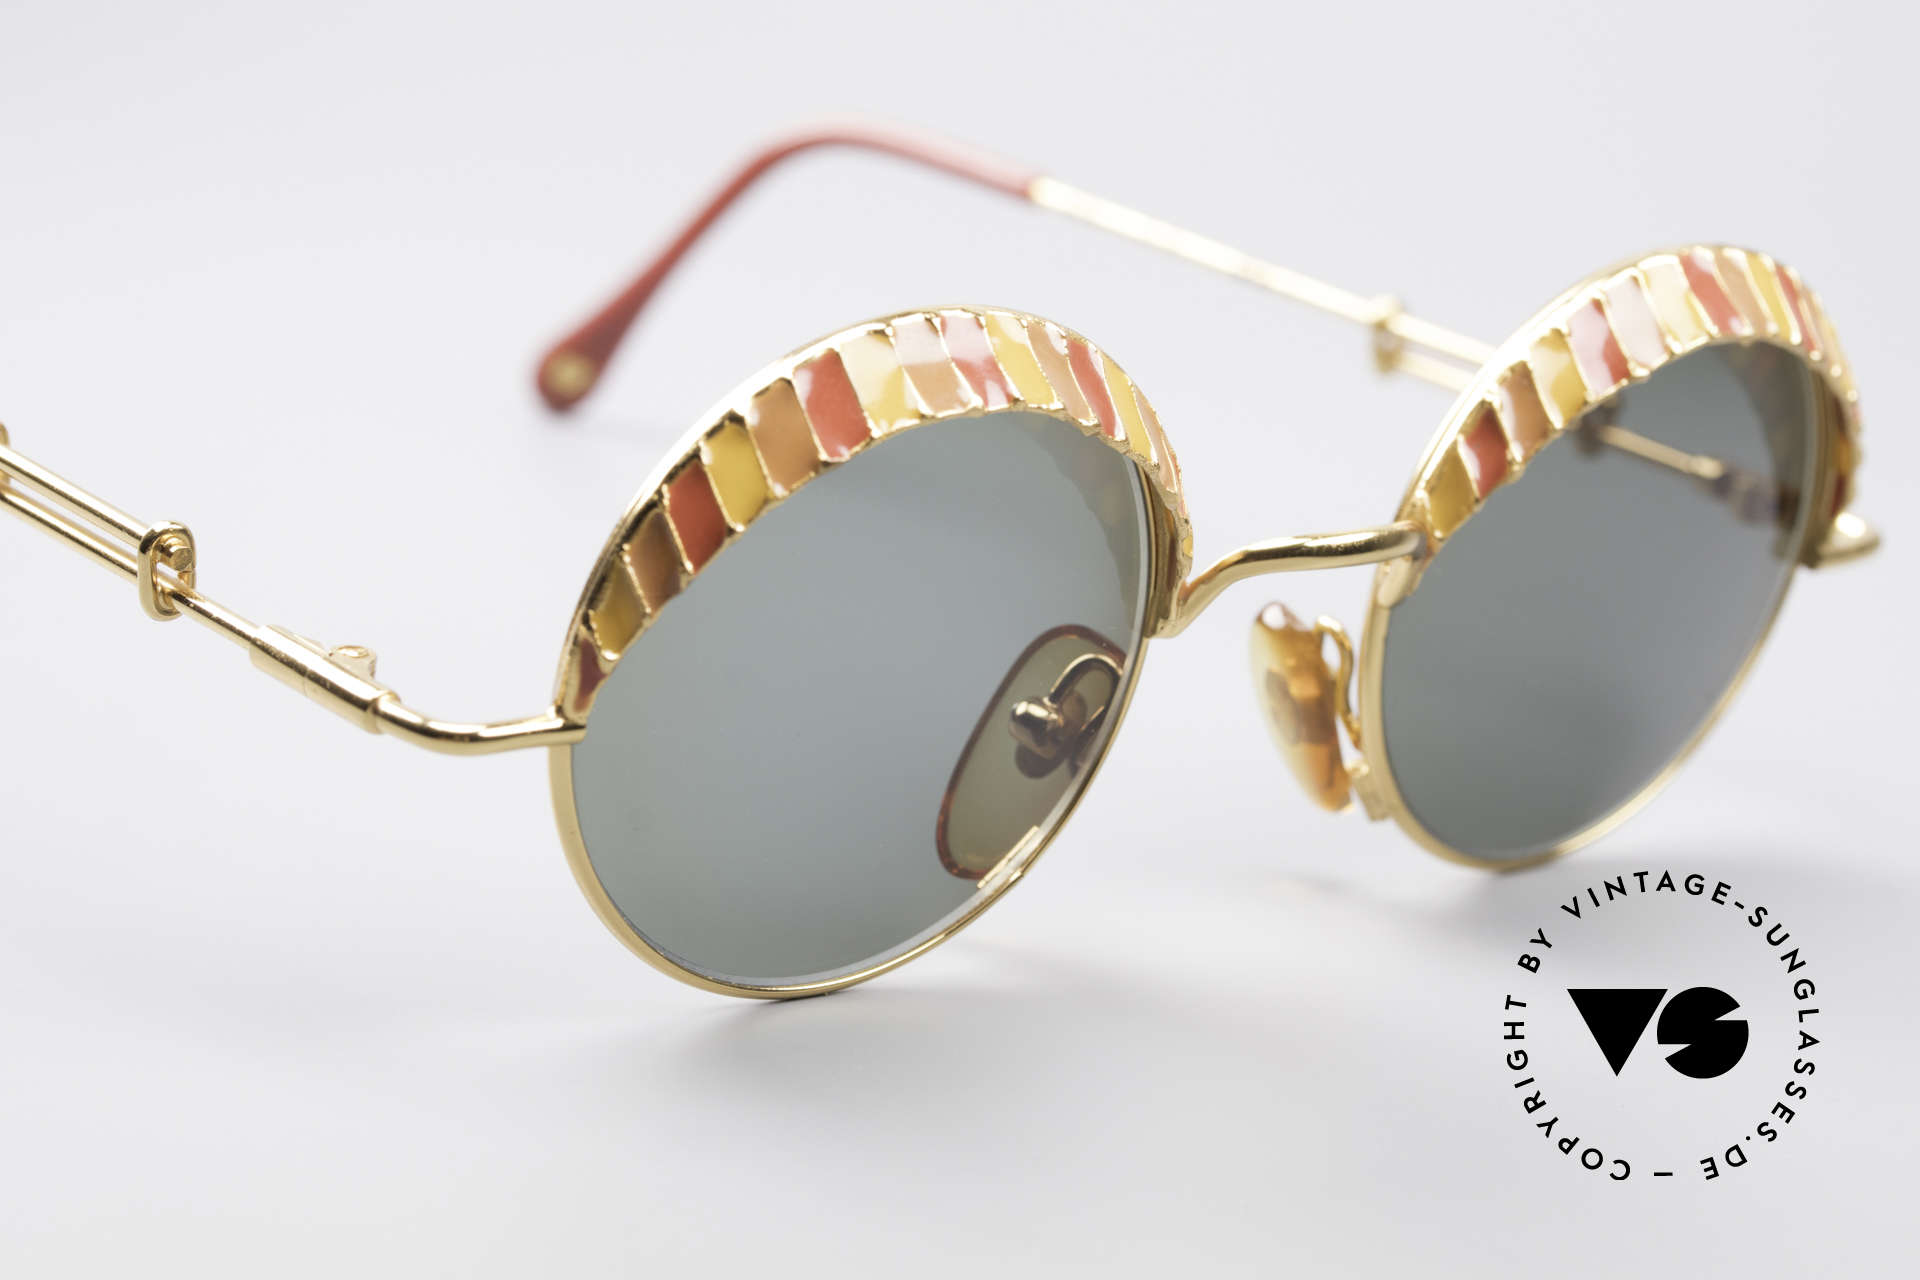 Casanova Arché 4 Limited Gold Plated Frame, rare, extravagant, valuable & in top quality (24Kt GP), Made for Men and Women